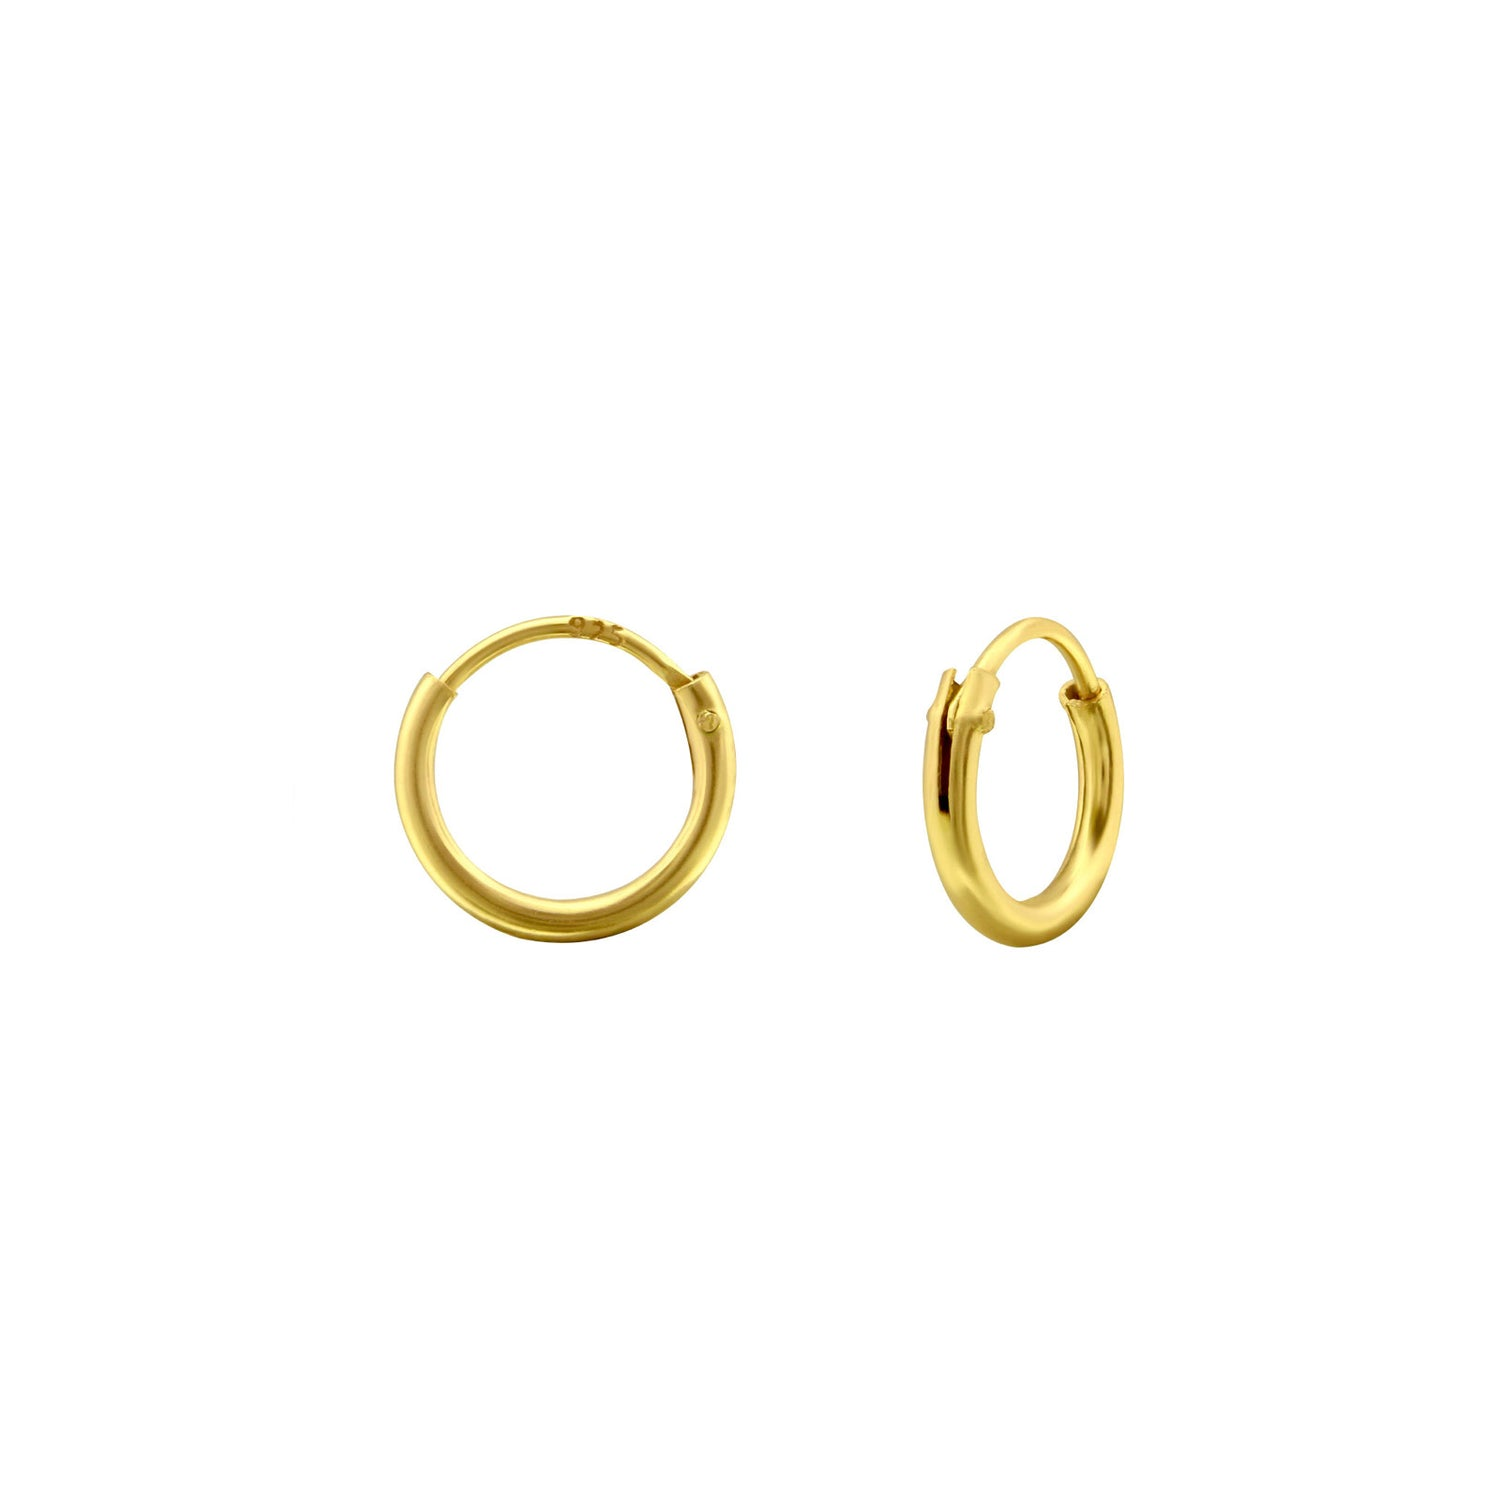 JAMBS JEWELRY 14KT YELLOW GOLD DOUBLE HEART SAFETY EARRINGS FOR CHILDREN